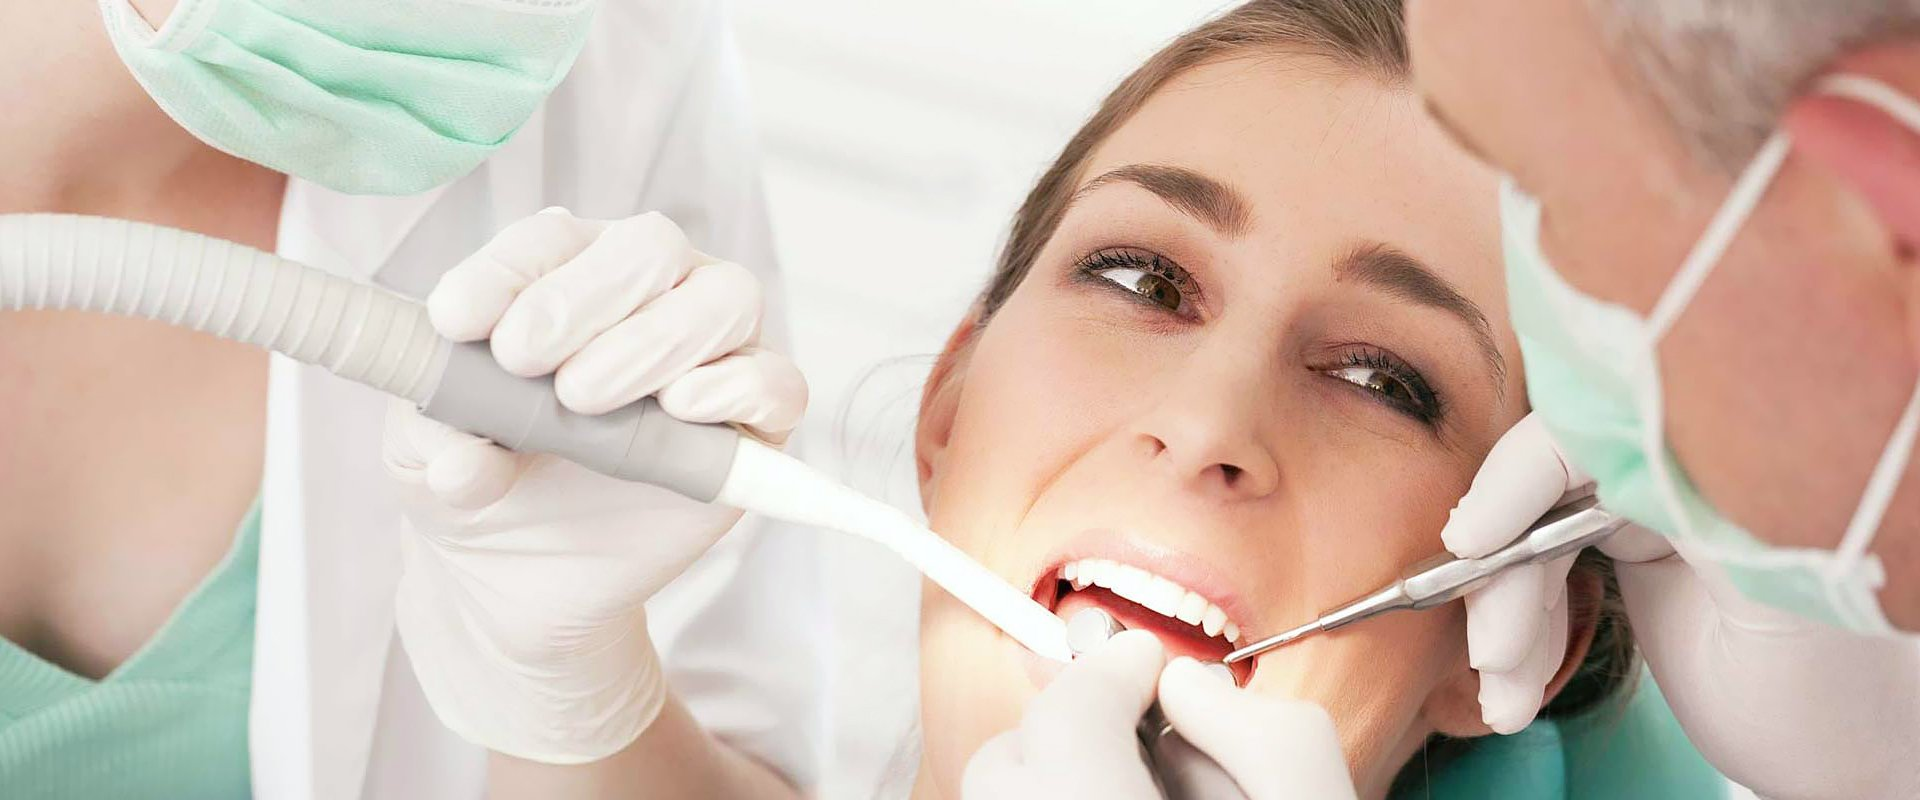 Experienced dental professionals